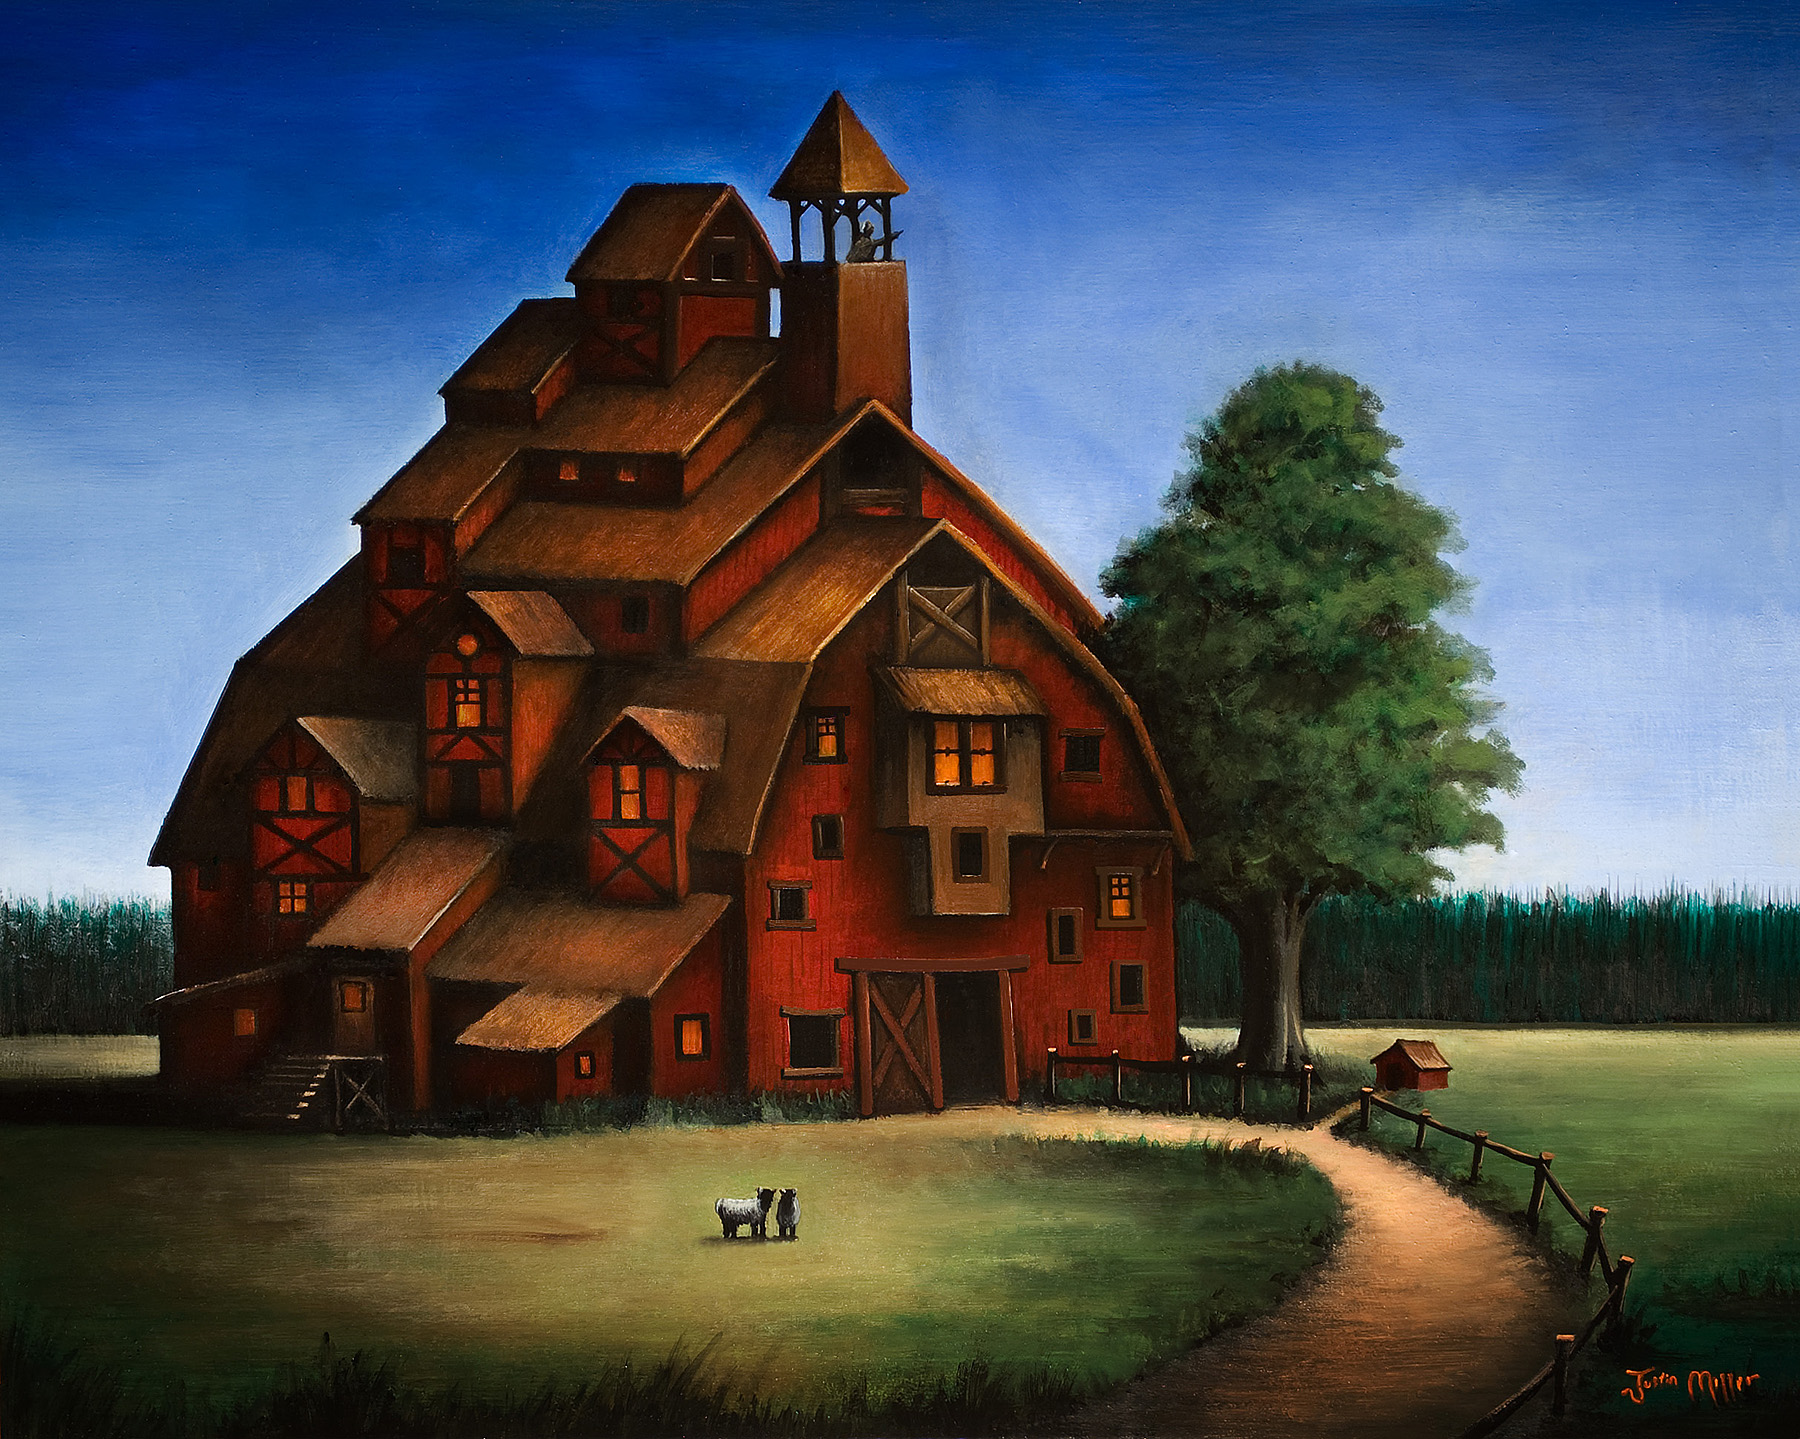 Barn House By Justindmiller On Deviantart